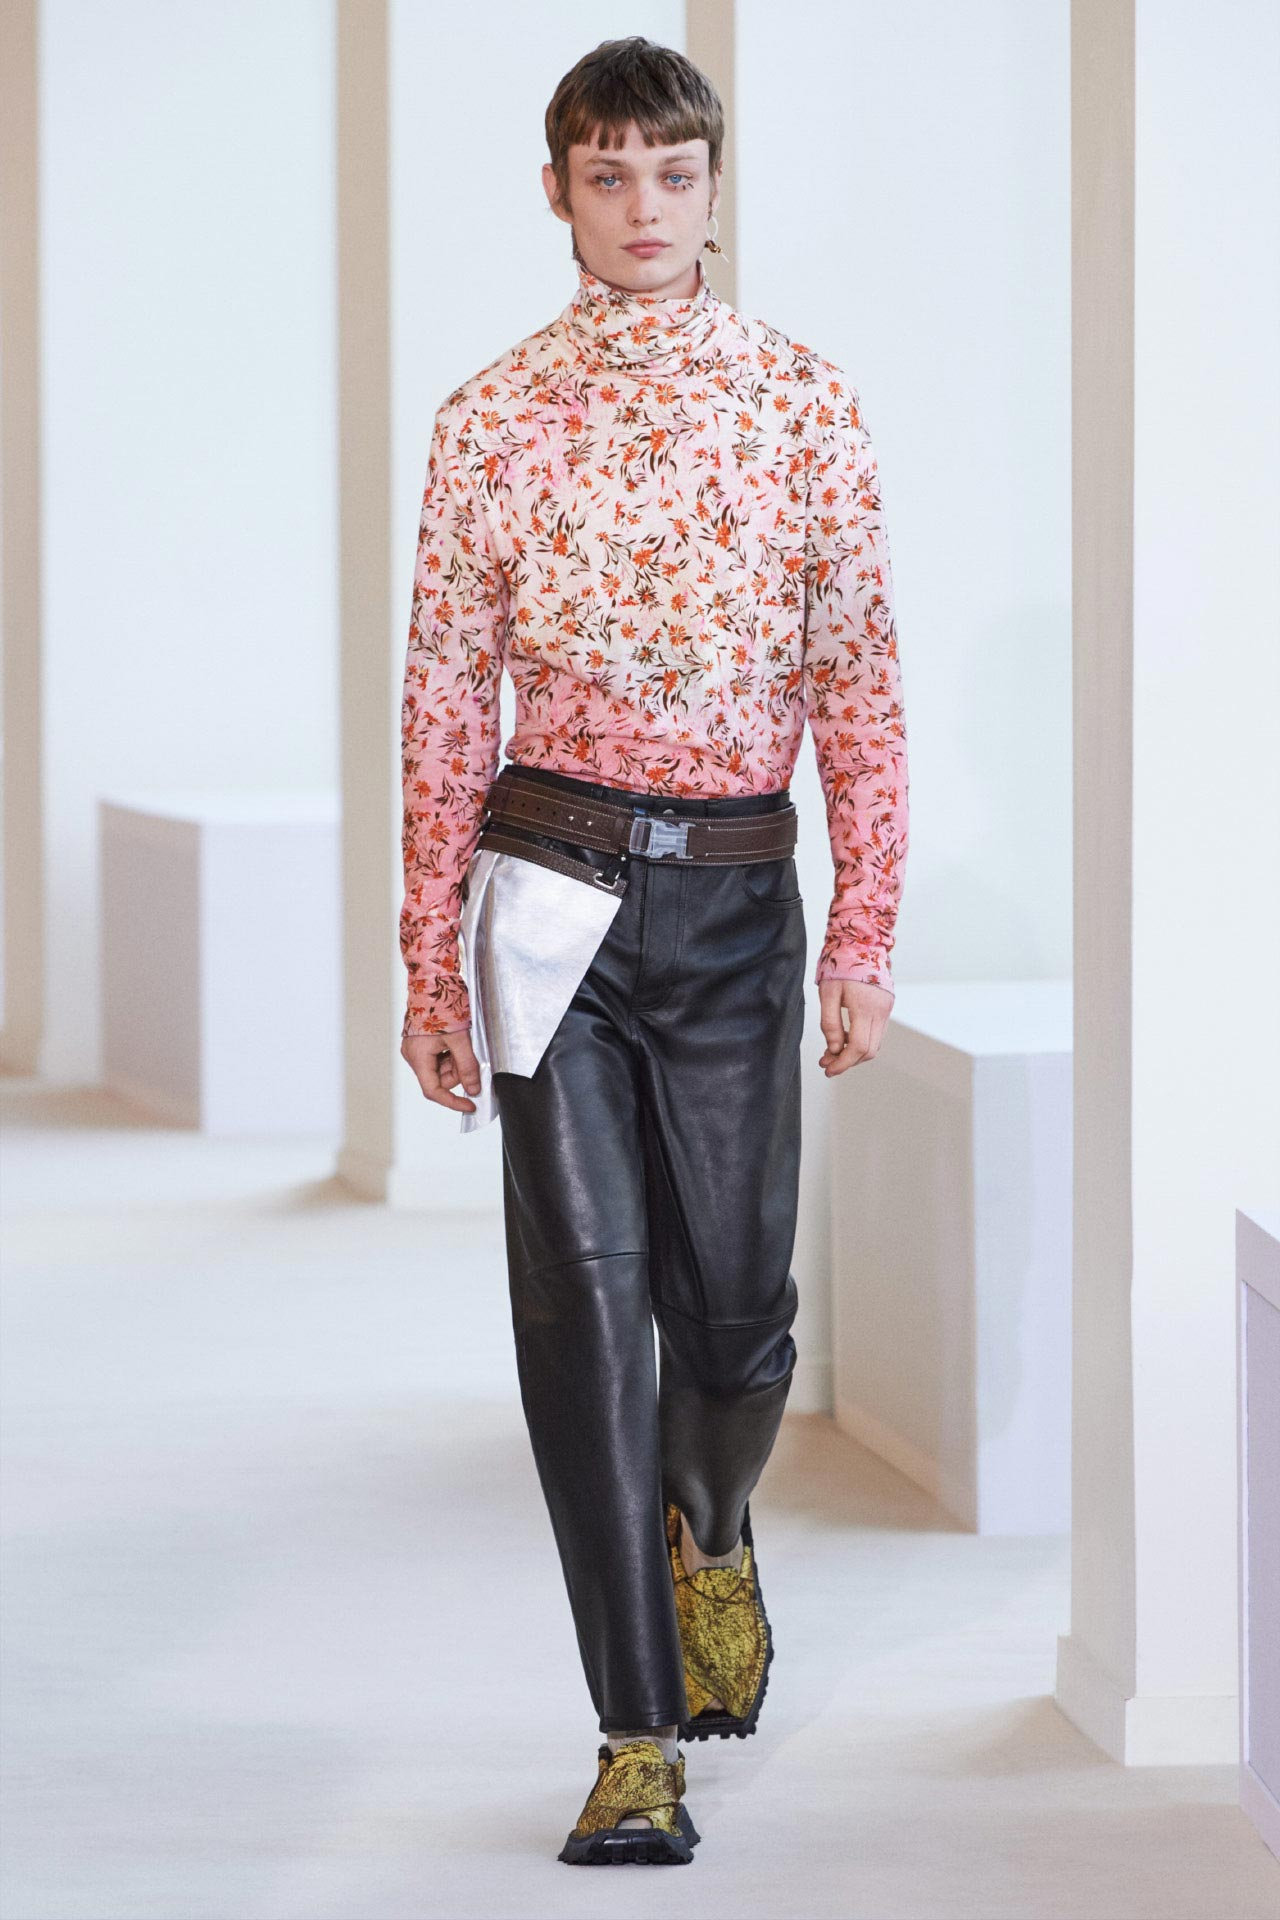 Look Spring/Summer, image 30